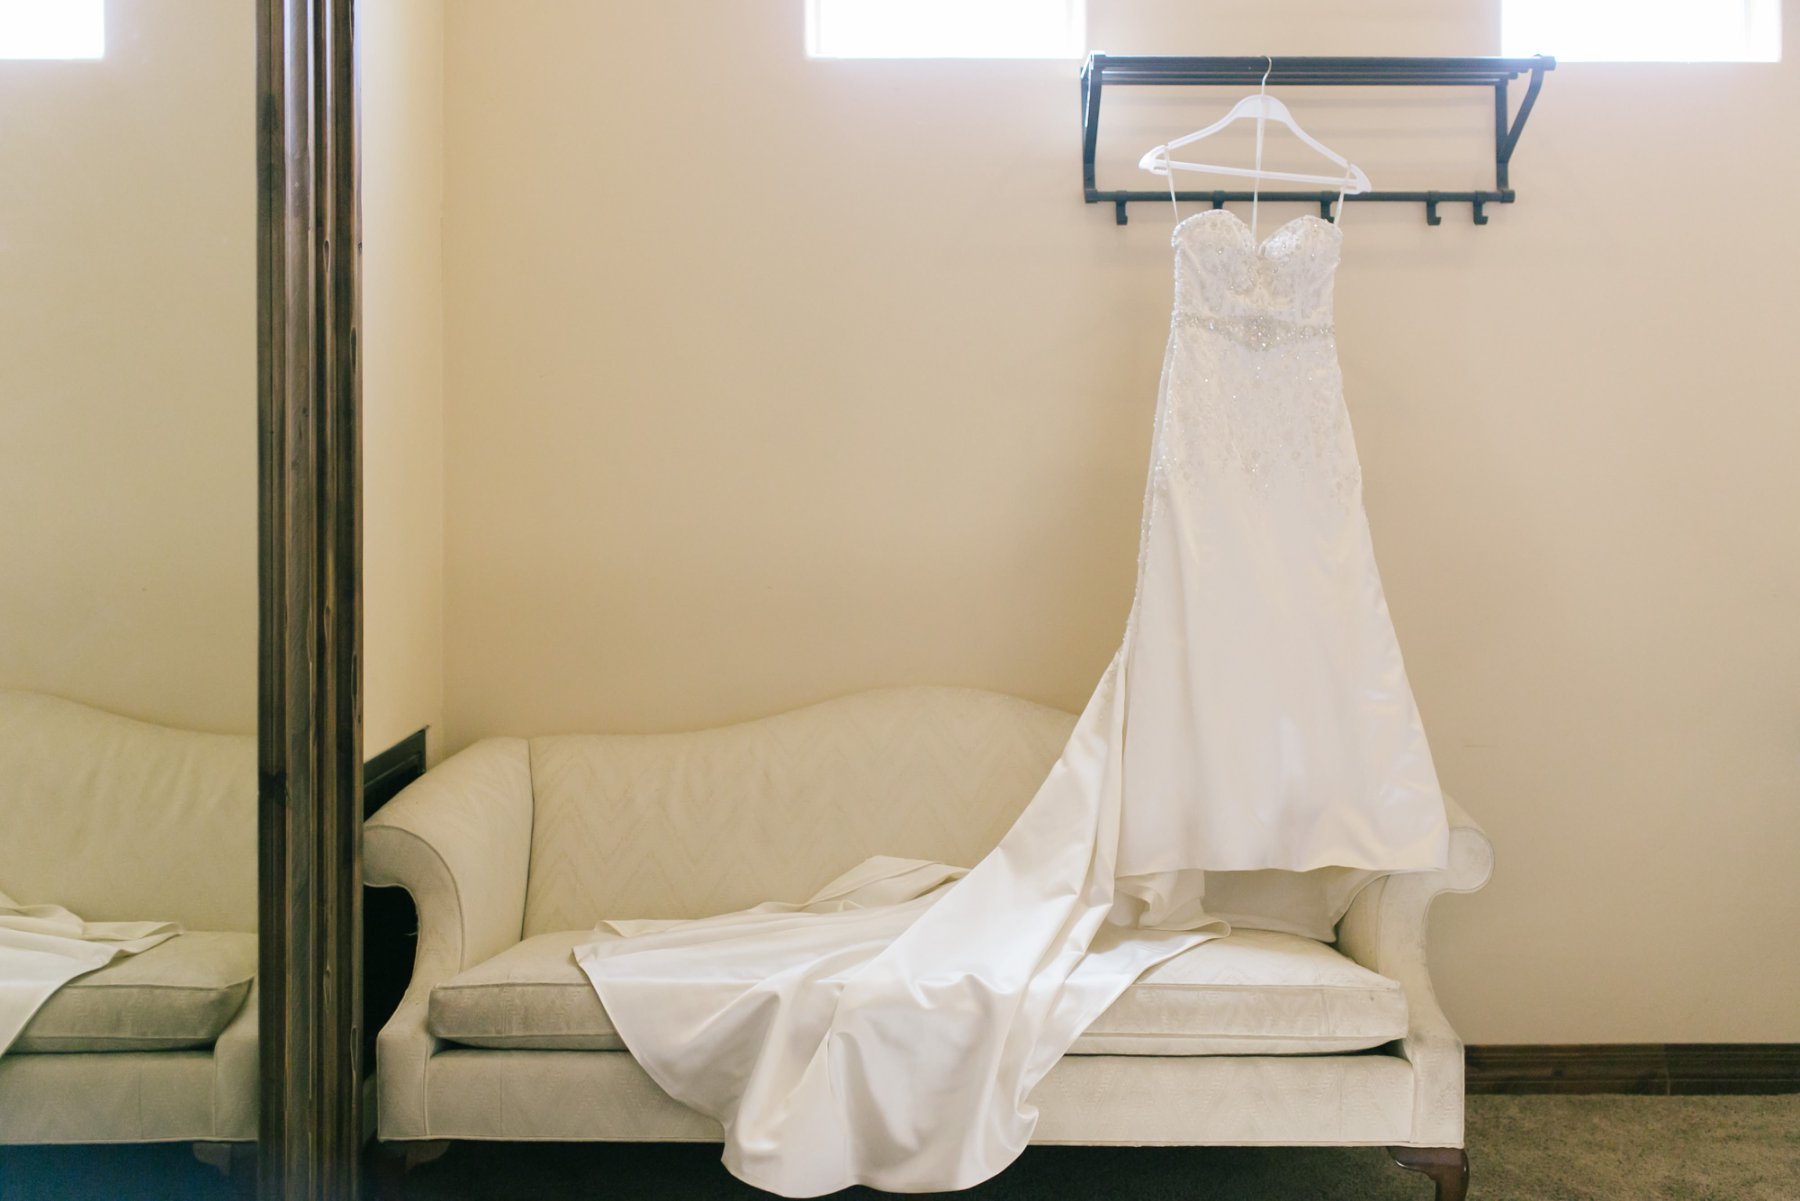 Superstition Manor bridal suite wedding dress hanging